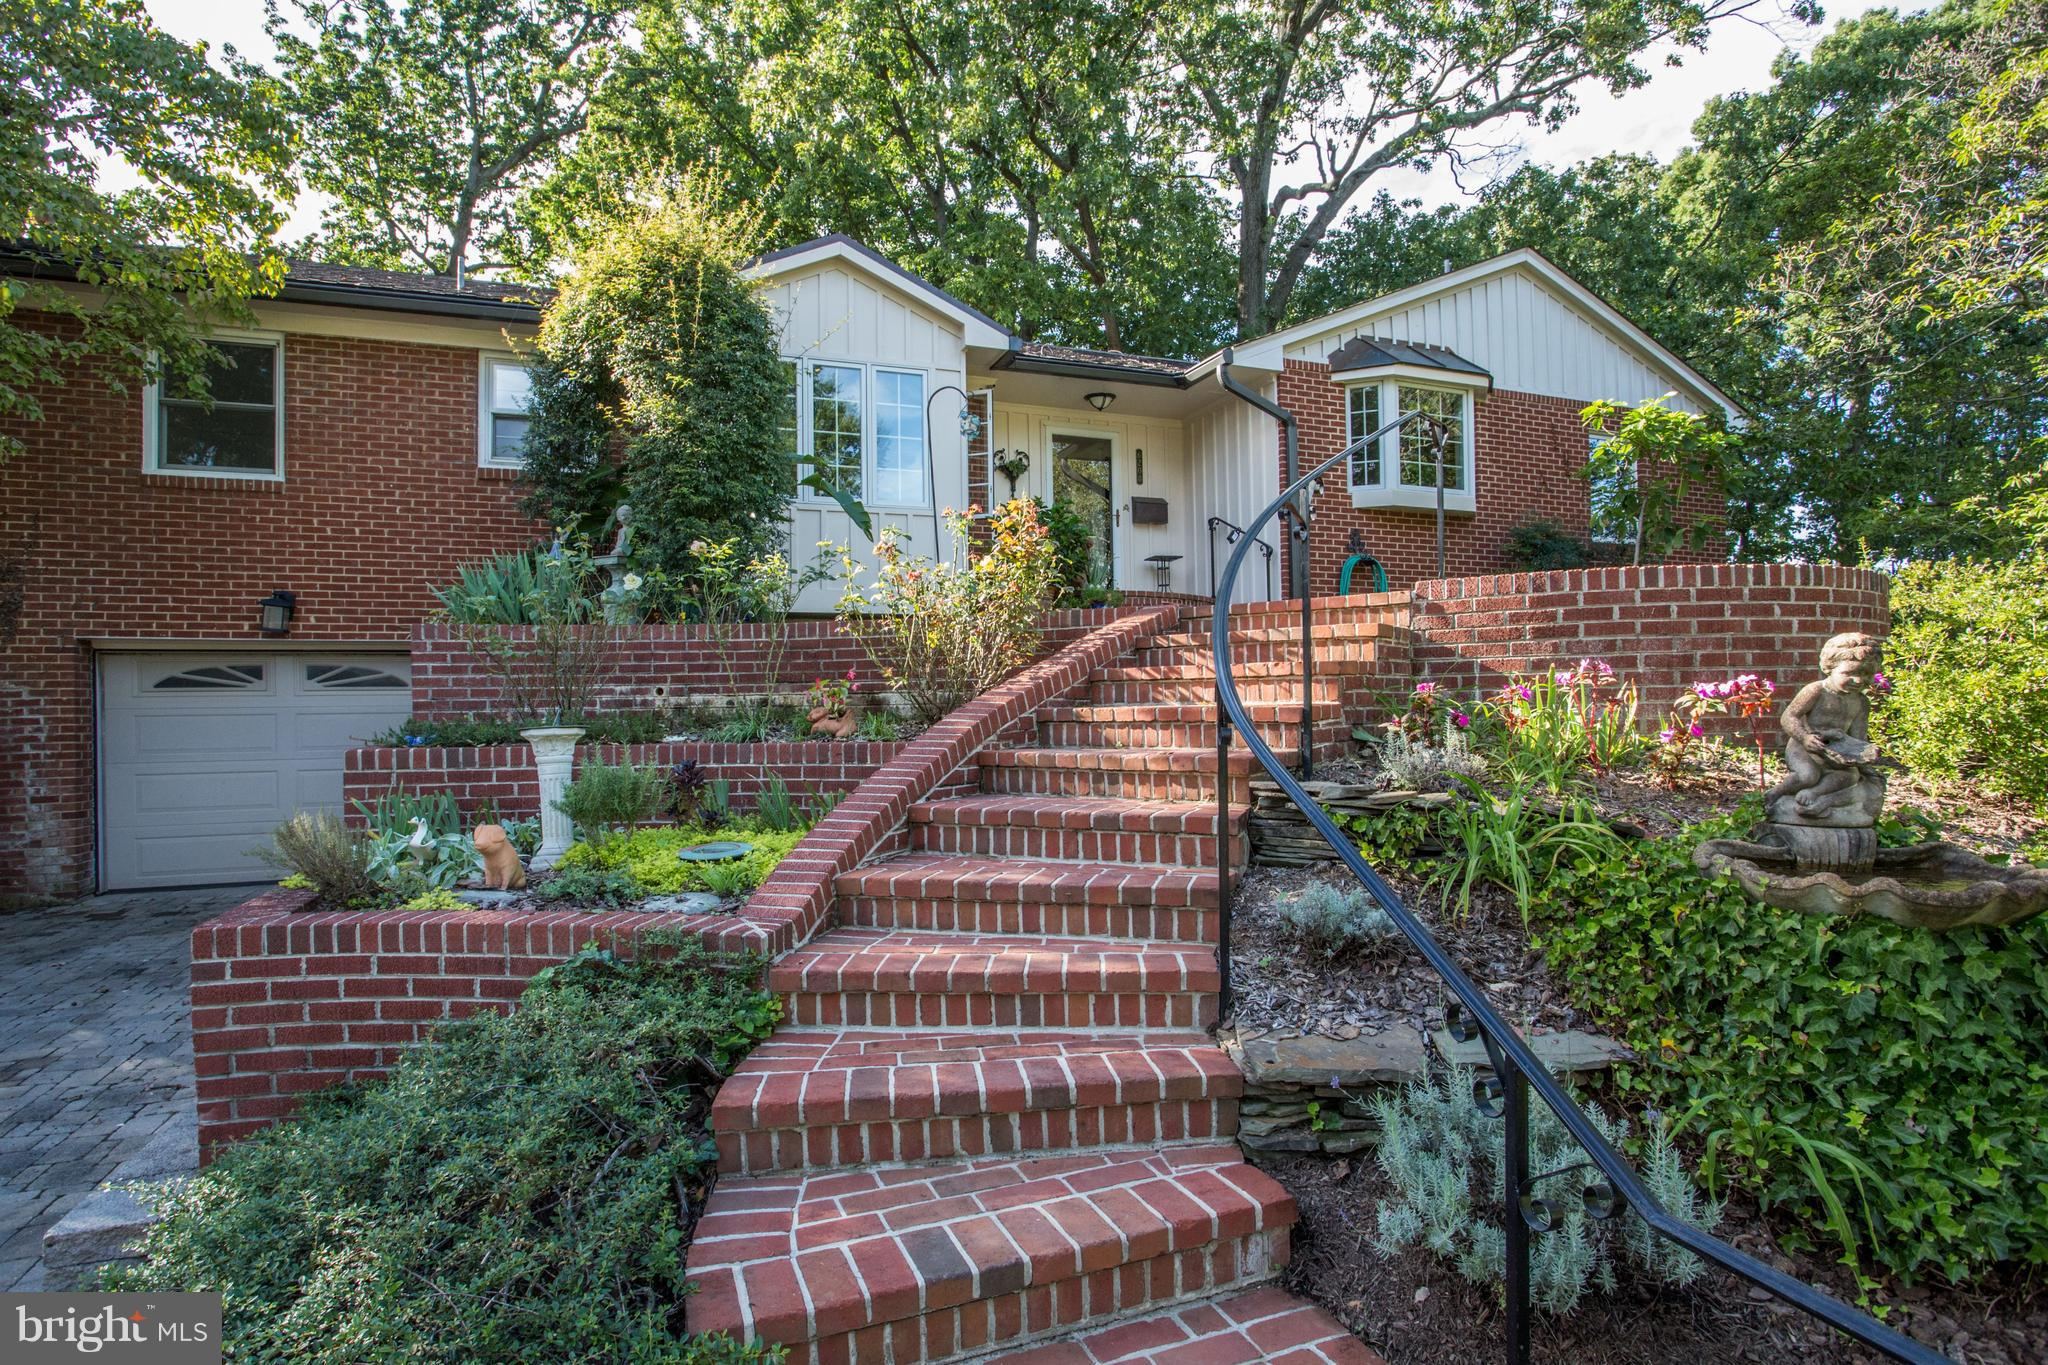 First Time for sale since it was built in 1956! Custom raised rambler set on a hill w/ spectacular landscaping and gorgeous garden patio w/ professionally installed lighting. Beautiful renovated eat-in chef's kitchen with large island, double ovens & table.  Lower level is fin w/ large recreation room, wood stove, kitchenette, in-law suite. perfect for entertain & loads of parking!